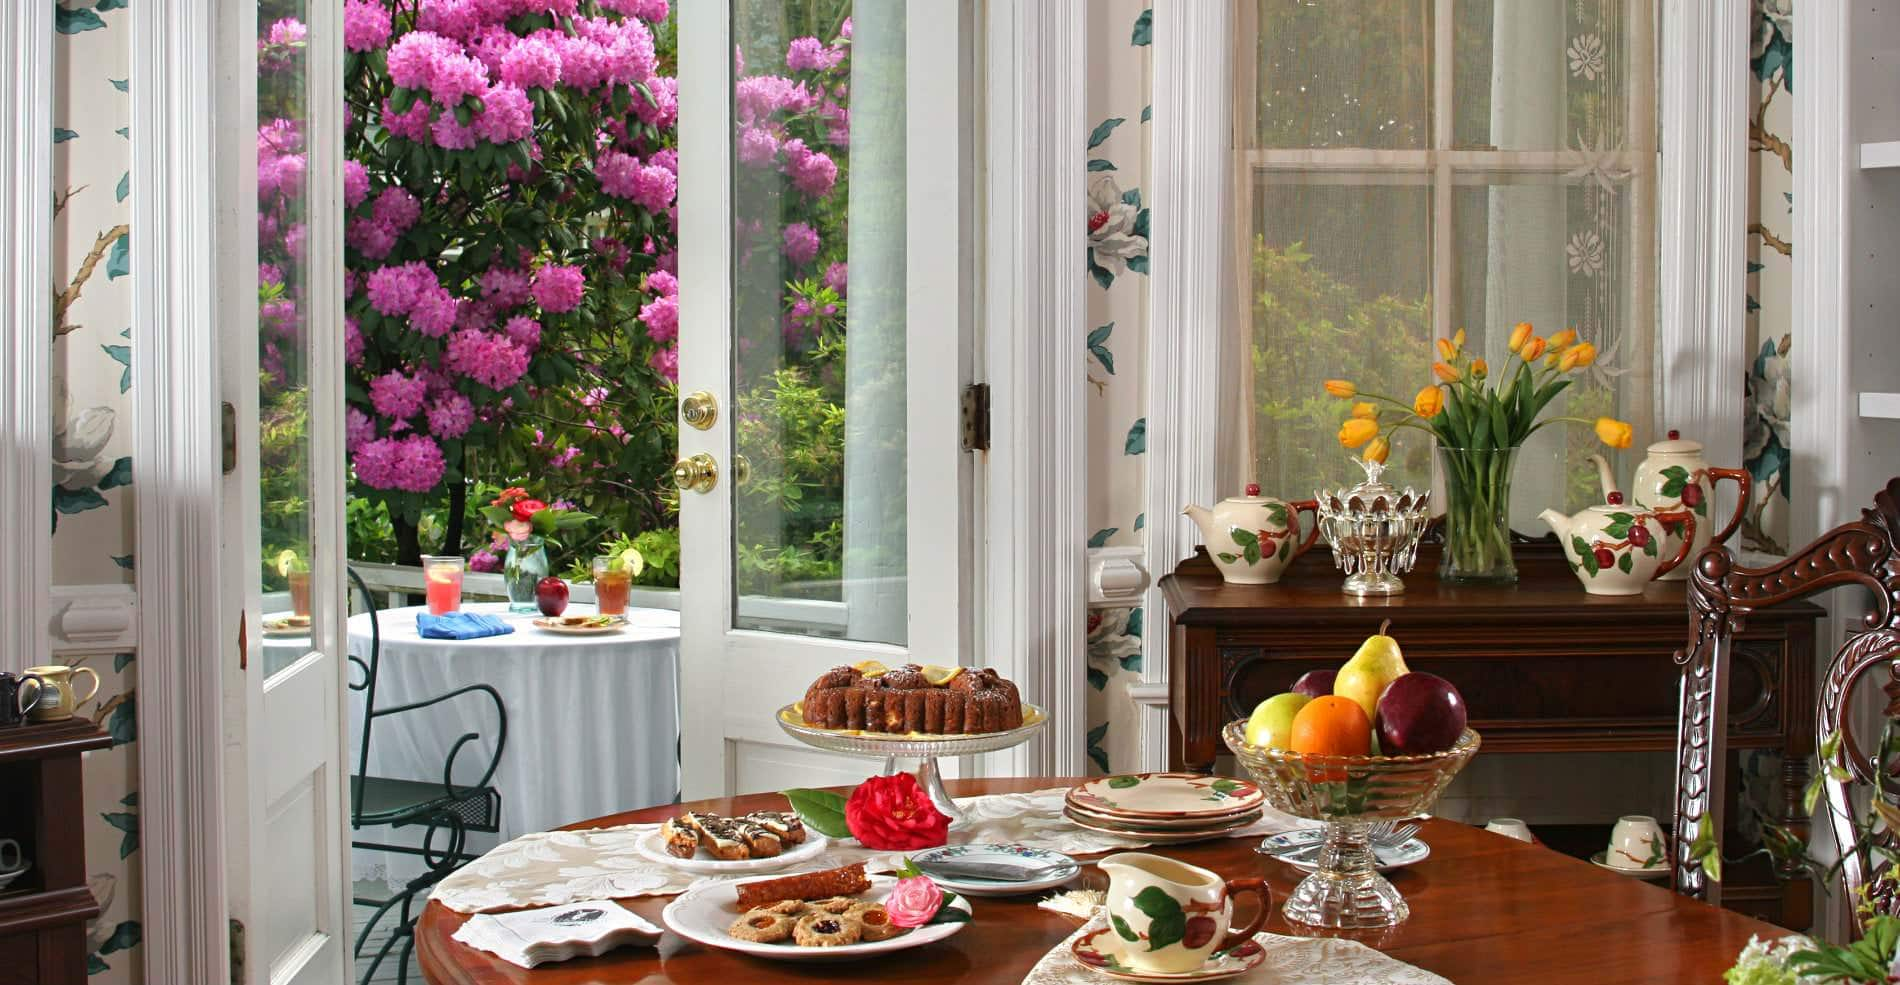 in a bright dining room is a table covered with pastries with the patio doors open to a bistro table